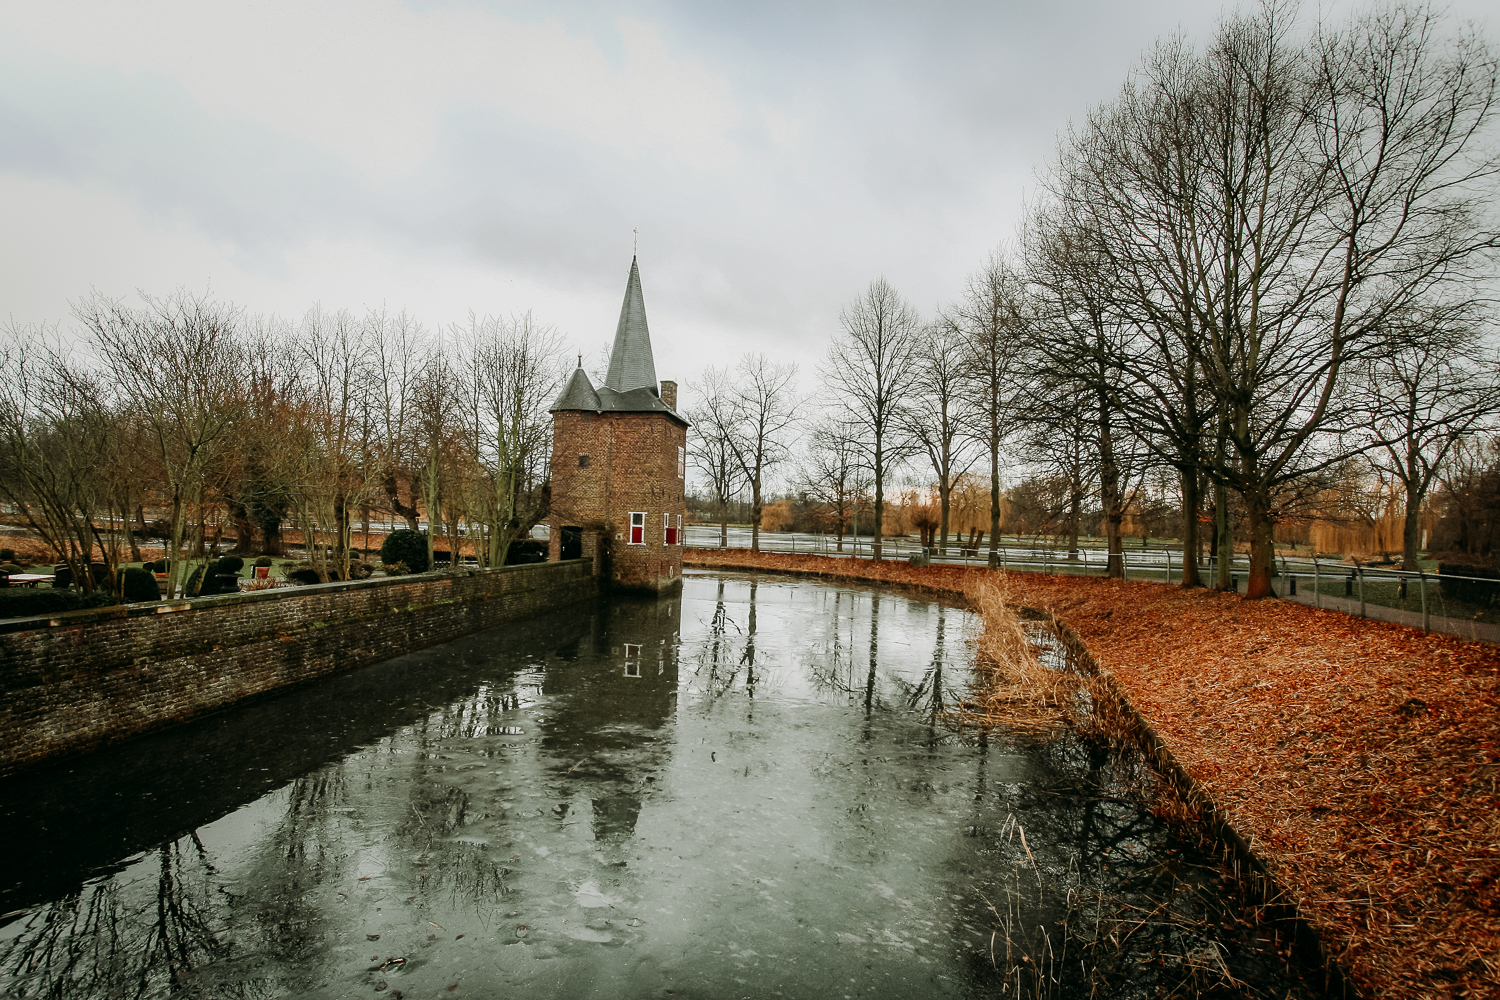 FrozenWinter At Heerlen